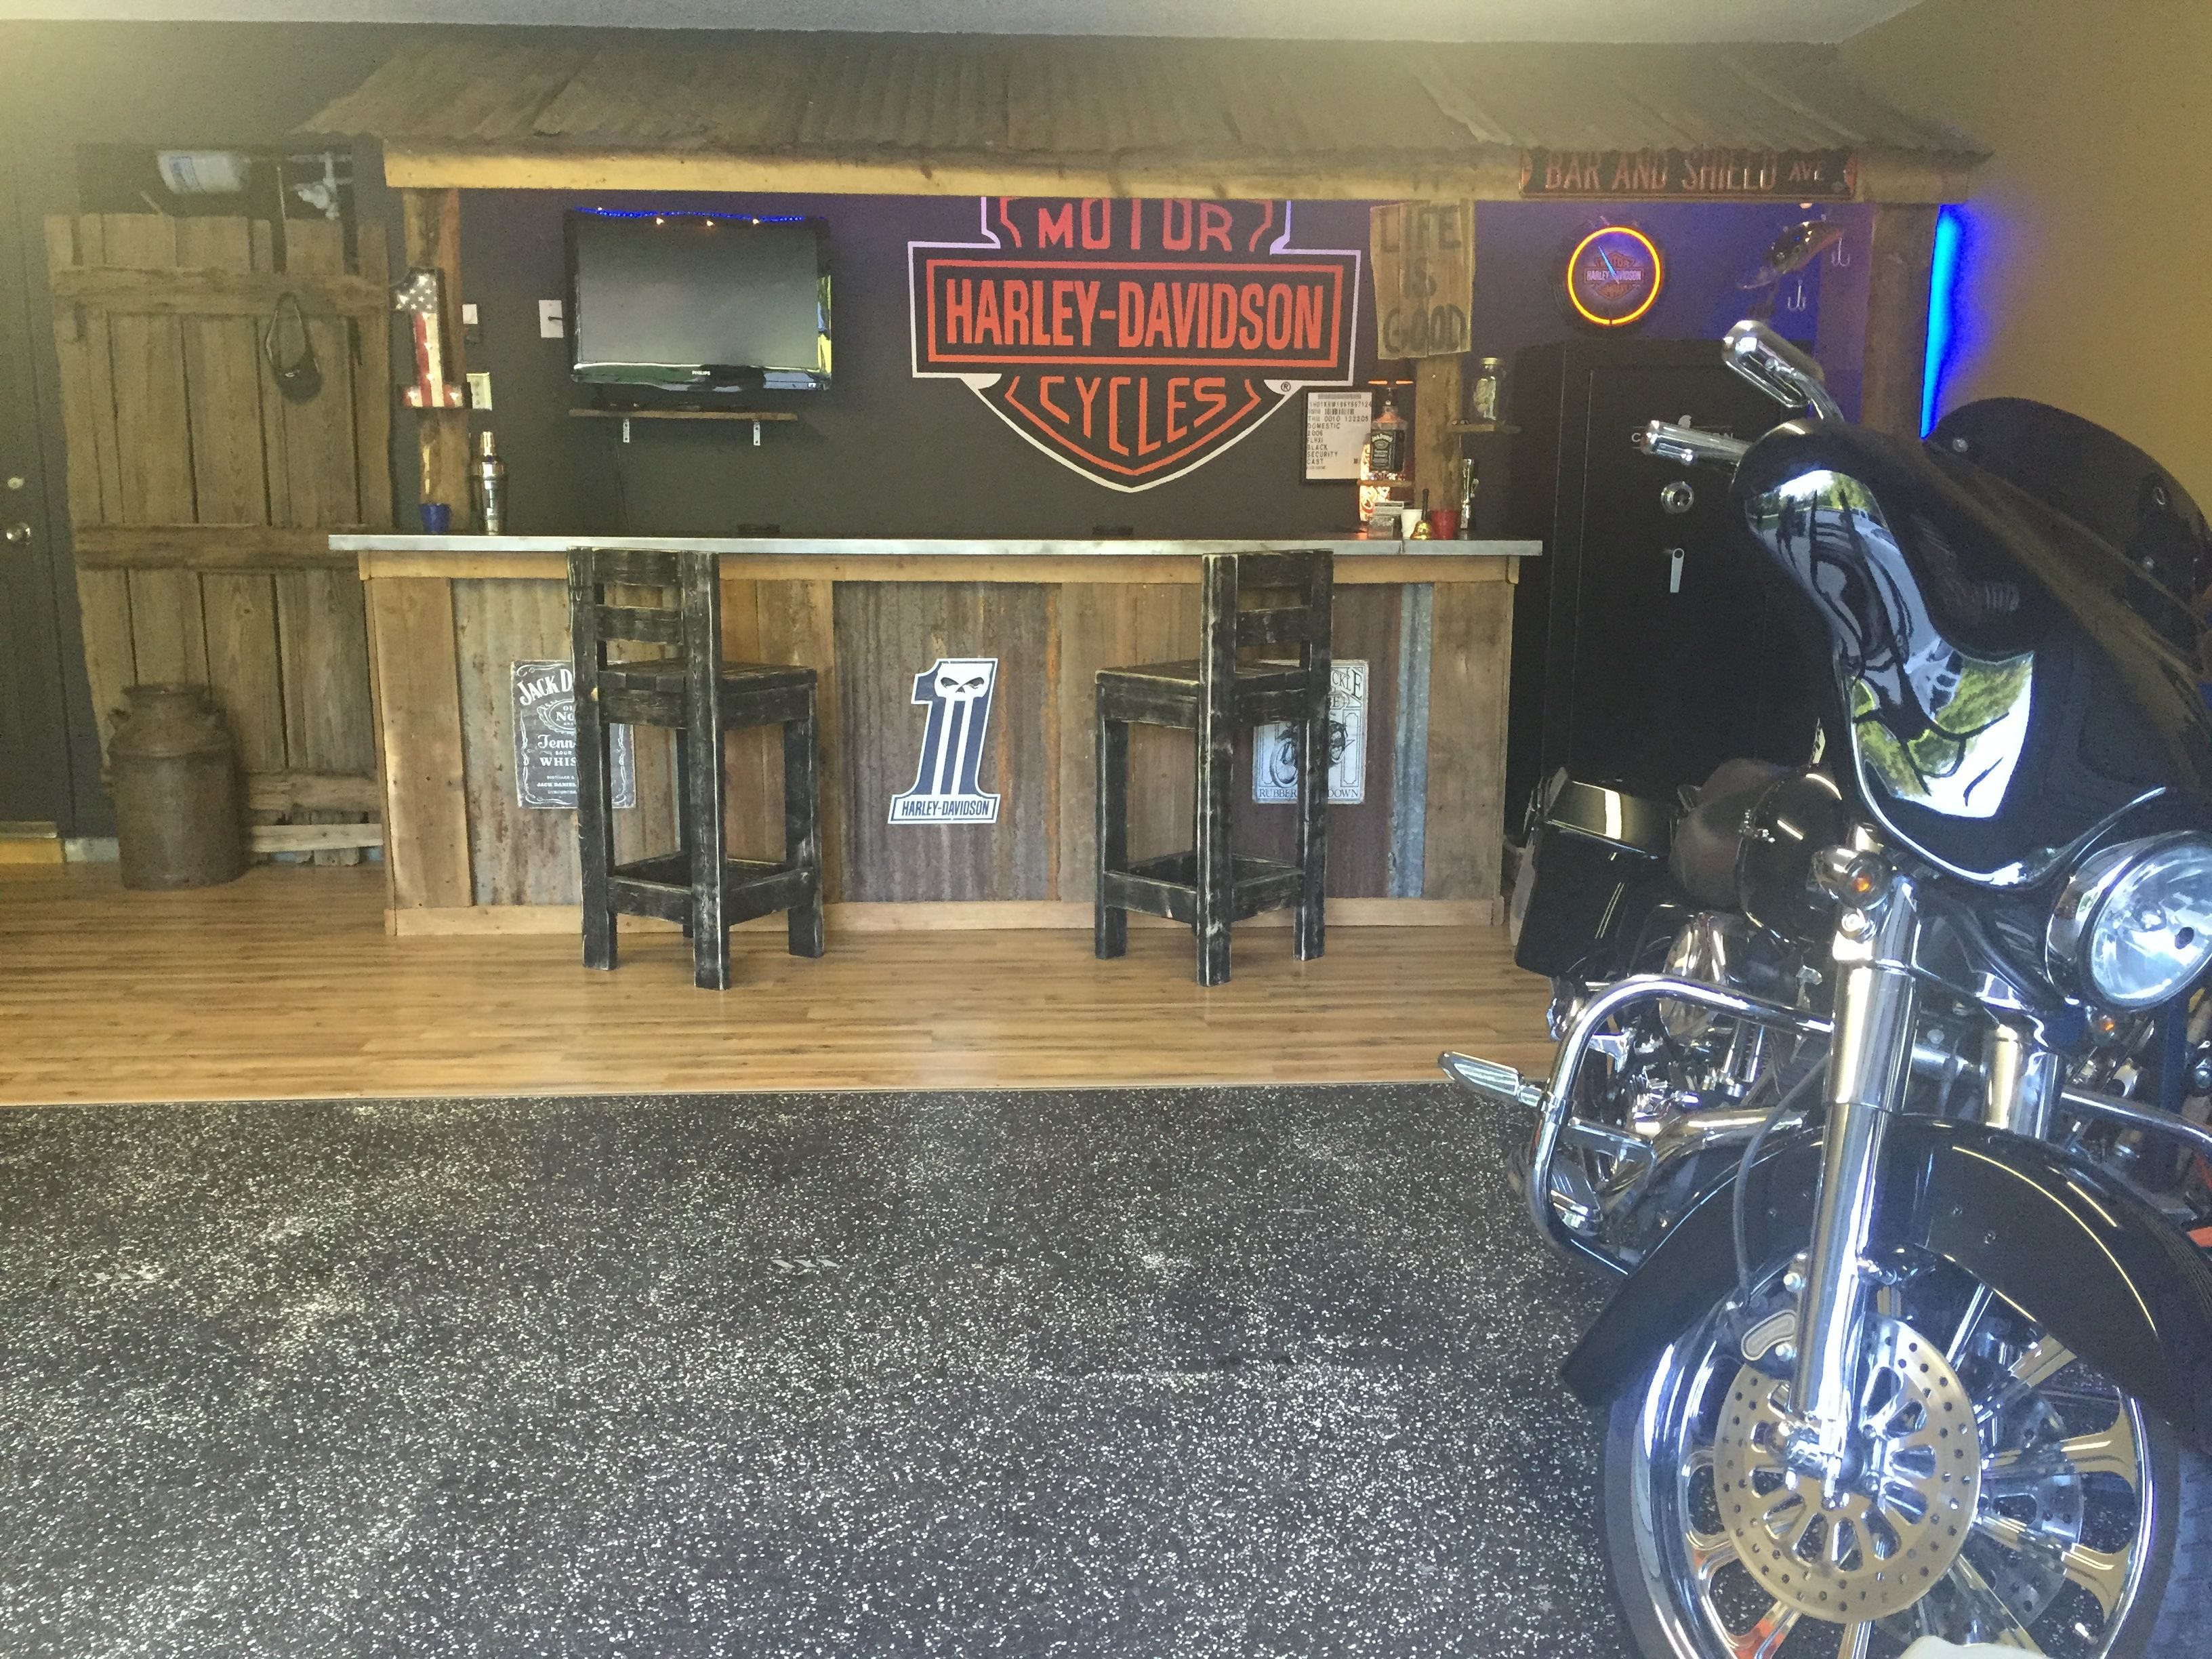 rustic garage man cave ideas - Garage Bar Man Cave Basement Bars Rustic Bar Harley